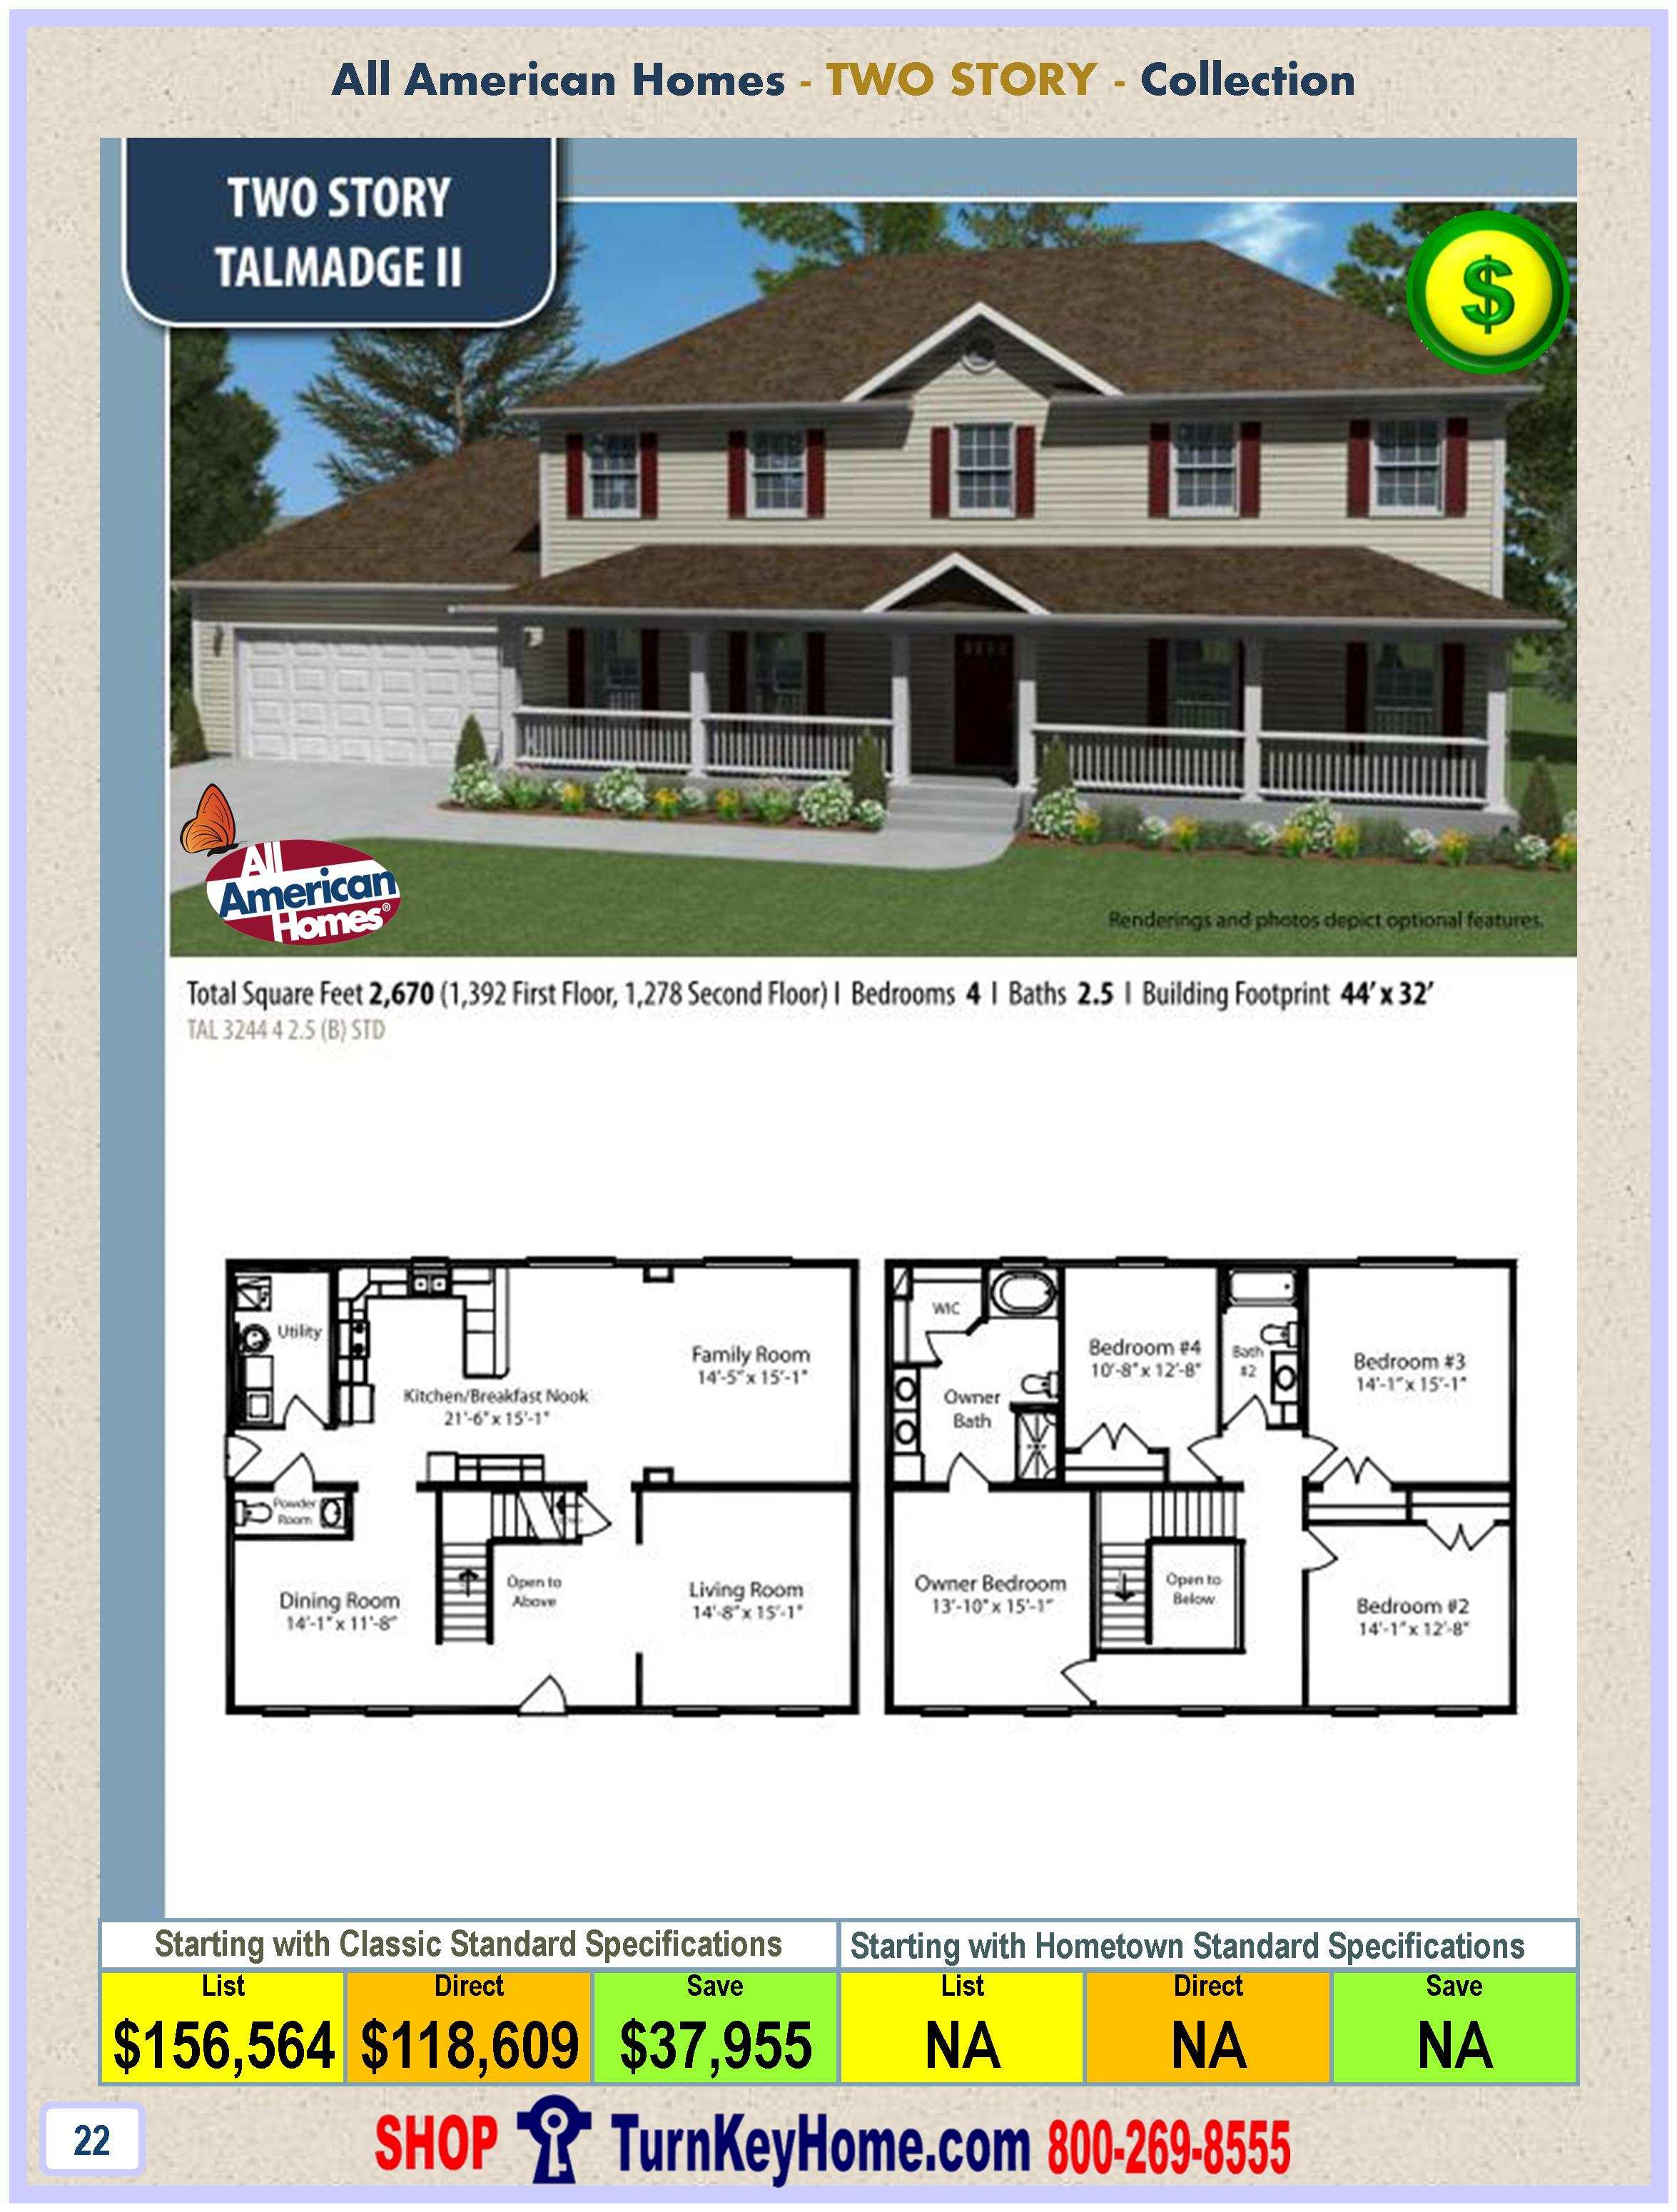 modular home all american homes two story talmadge ll plan pricemore here. Modular Home Pricing  4 Bedroom Modular Home Prices Homes 4